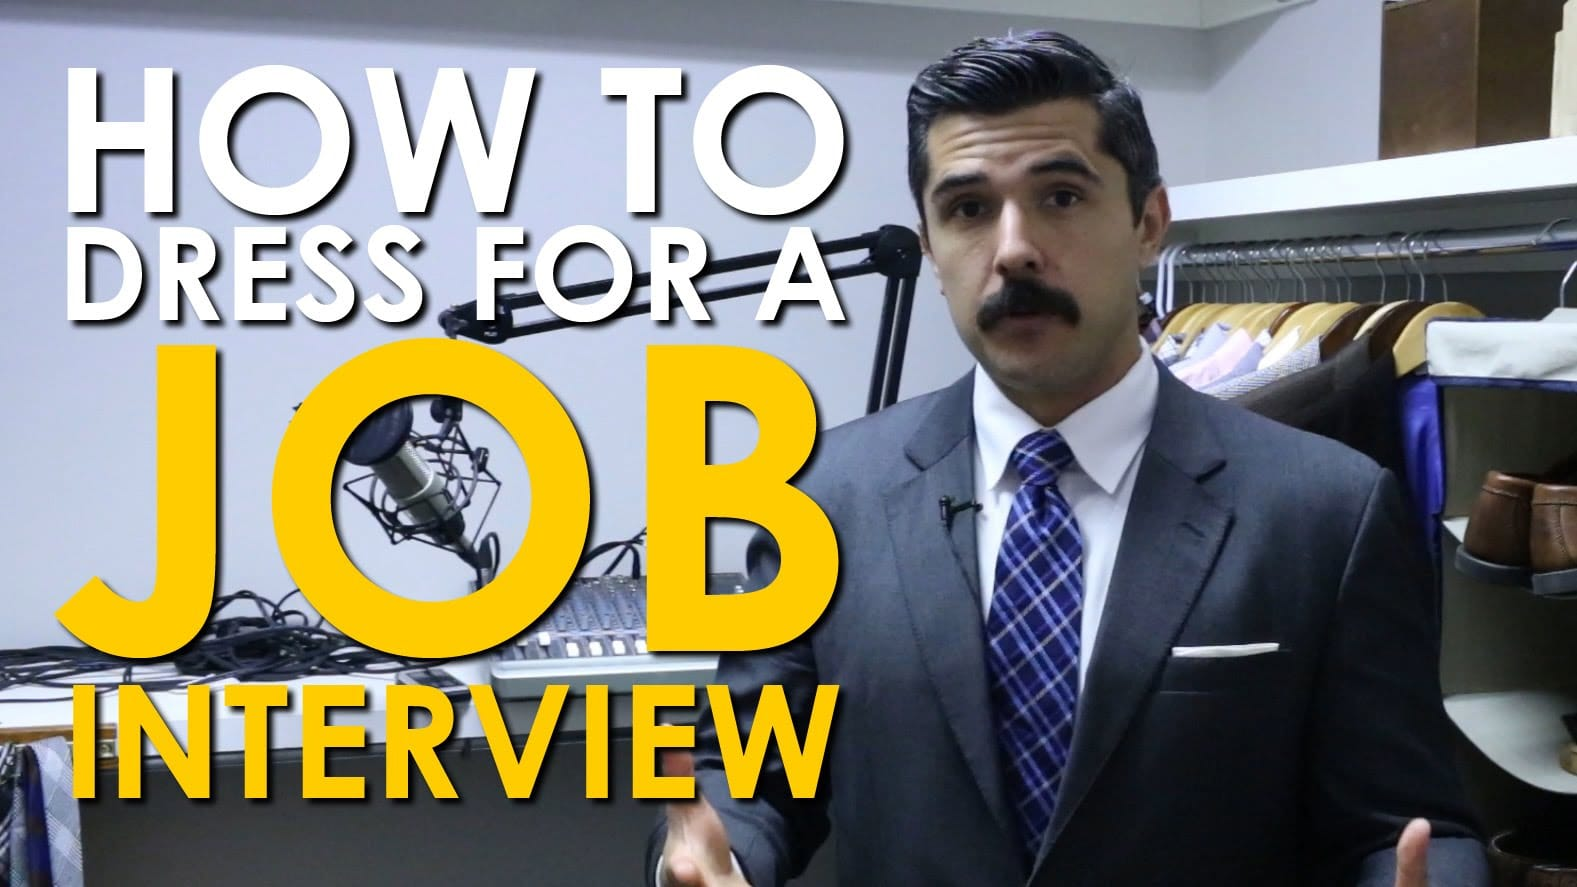 Dressing For Job Interviews [Video] | The Art of Manliness